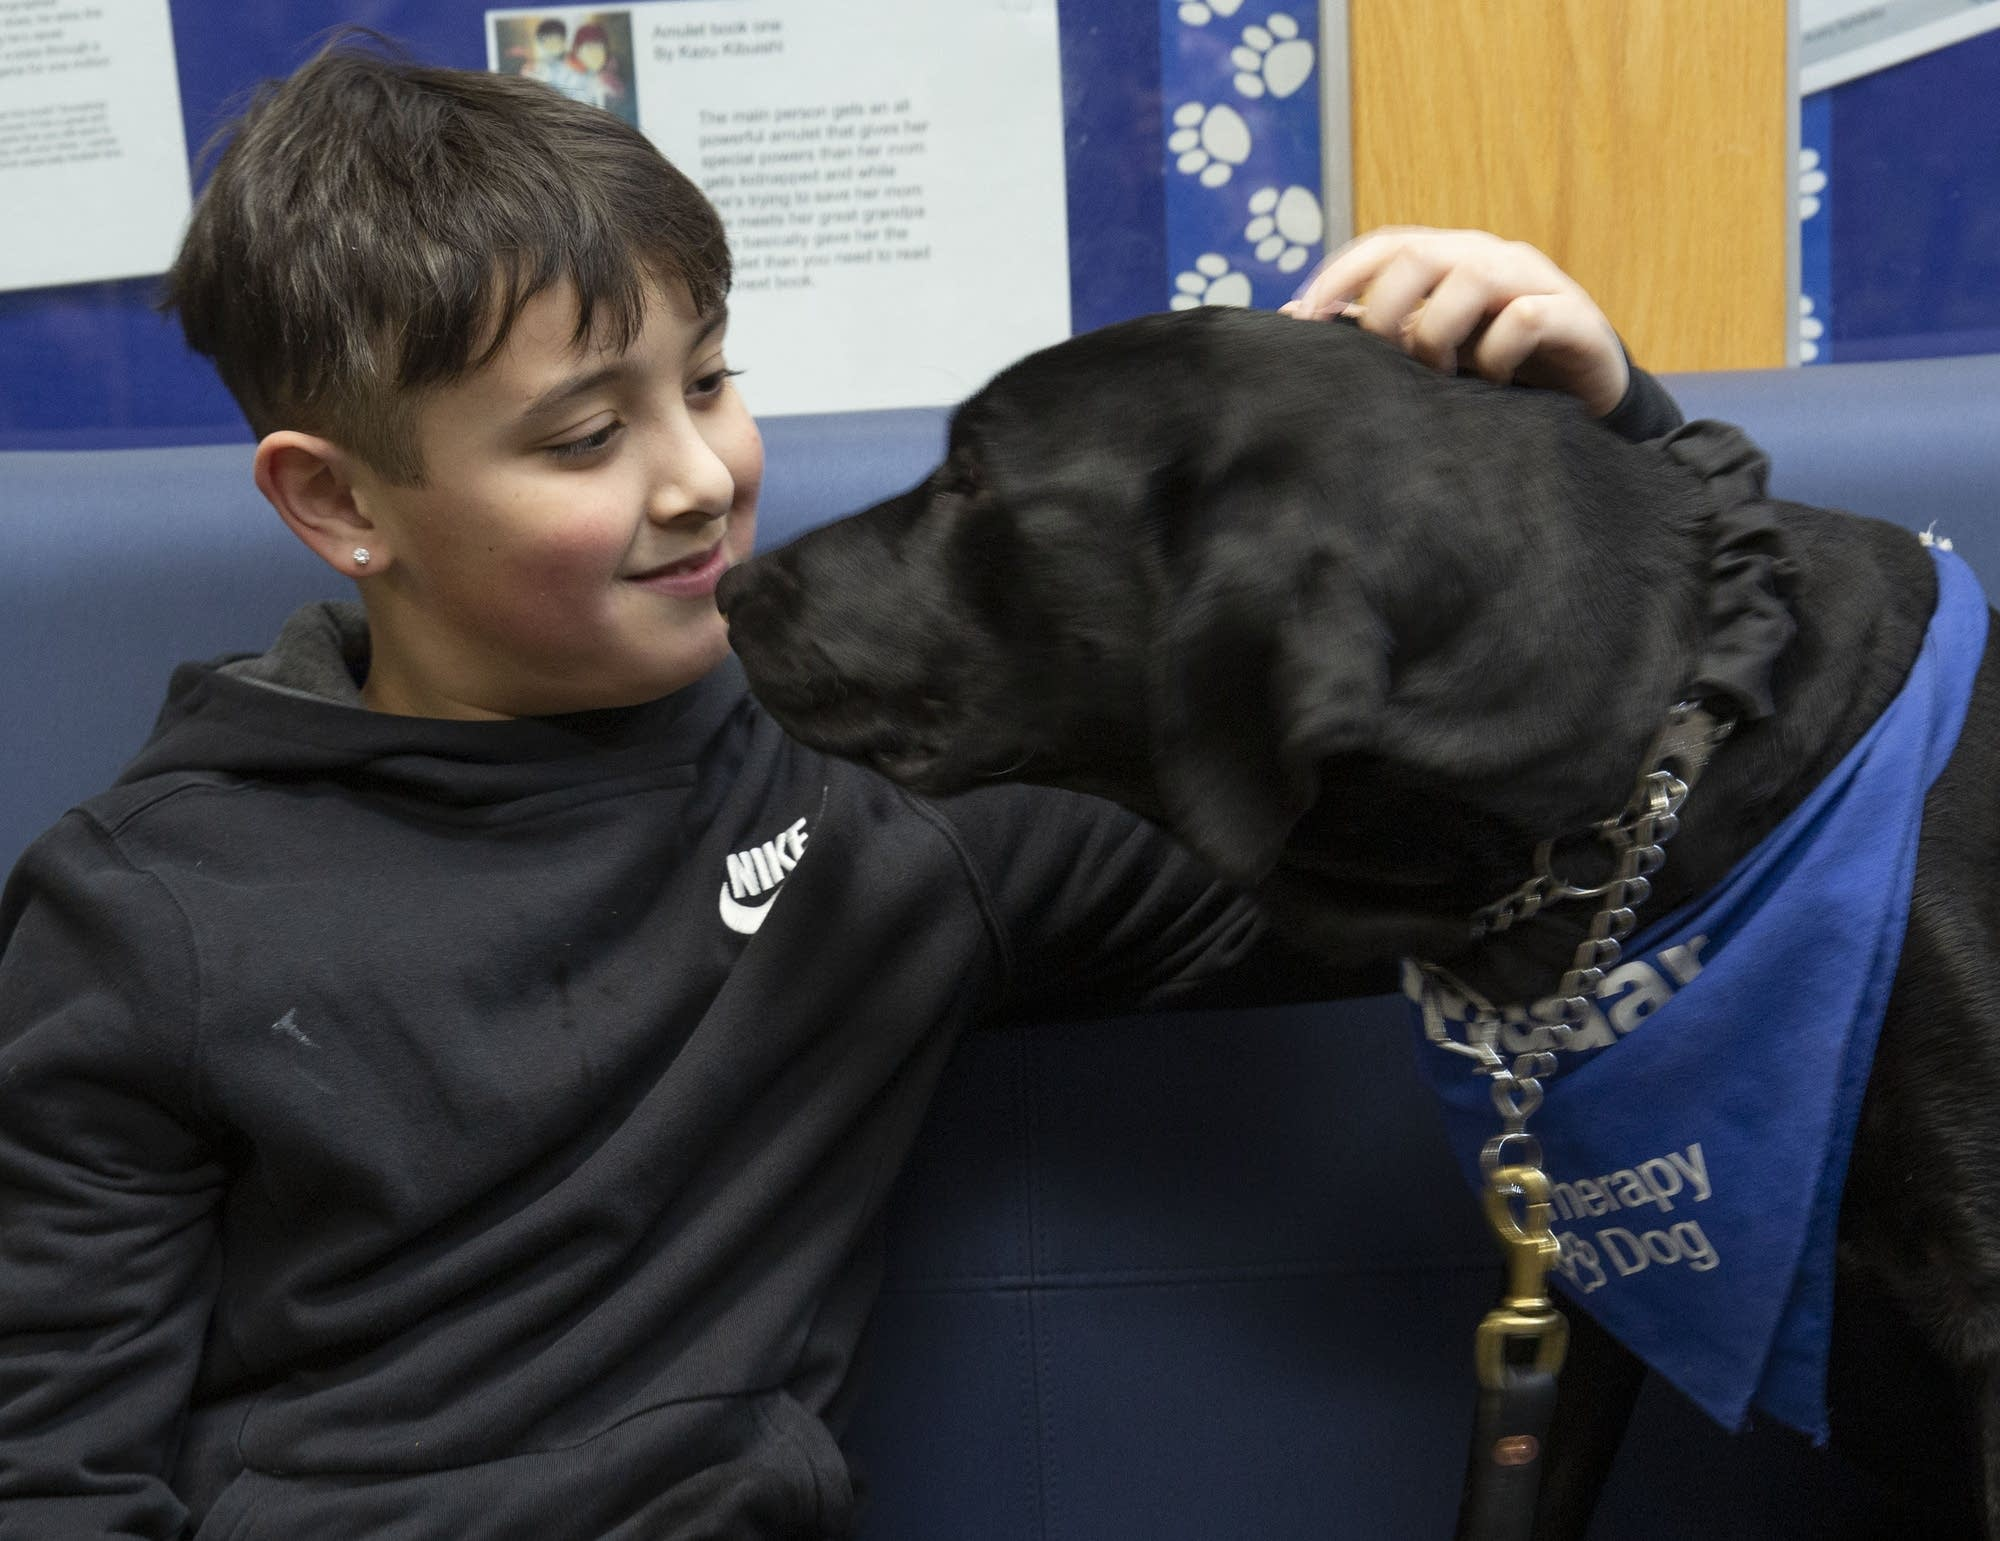 Oak Grove student Lucian Lally pets Radar during a stop in the hall.